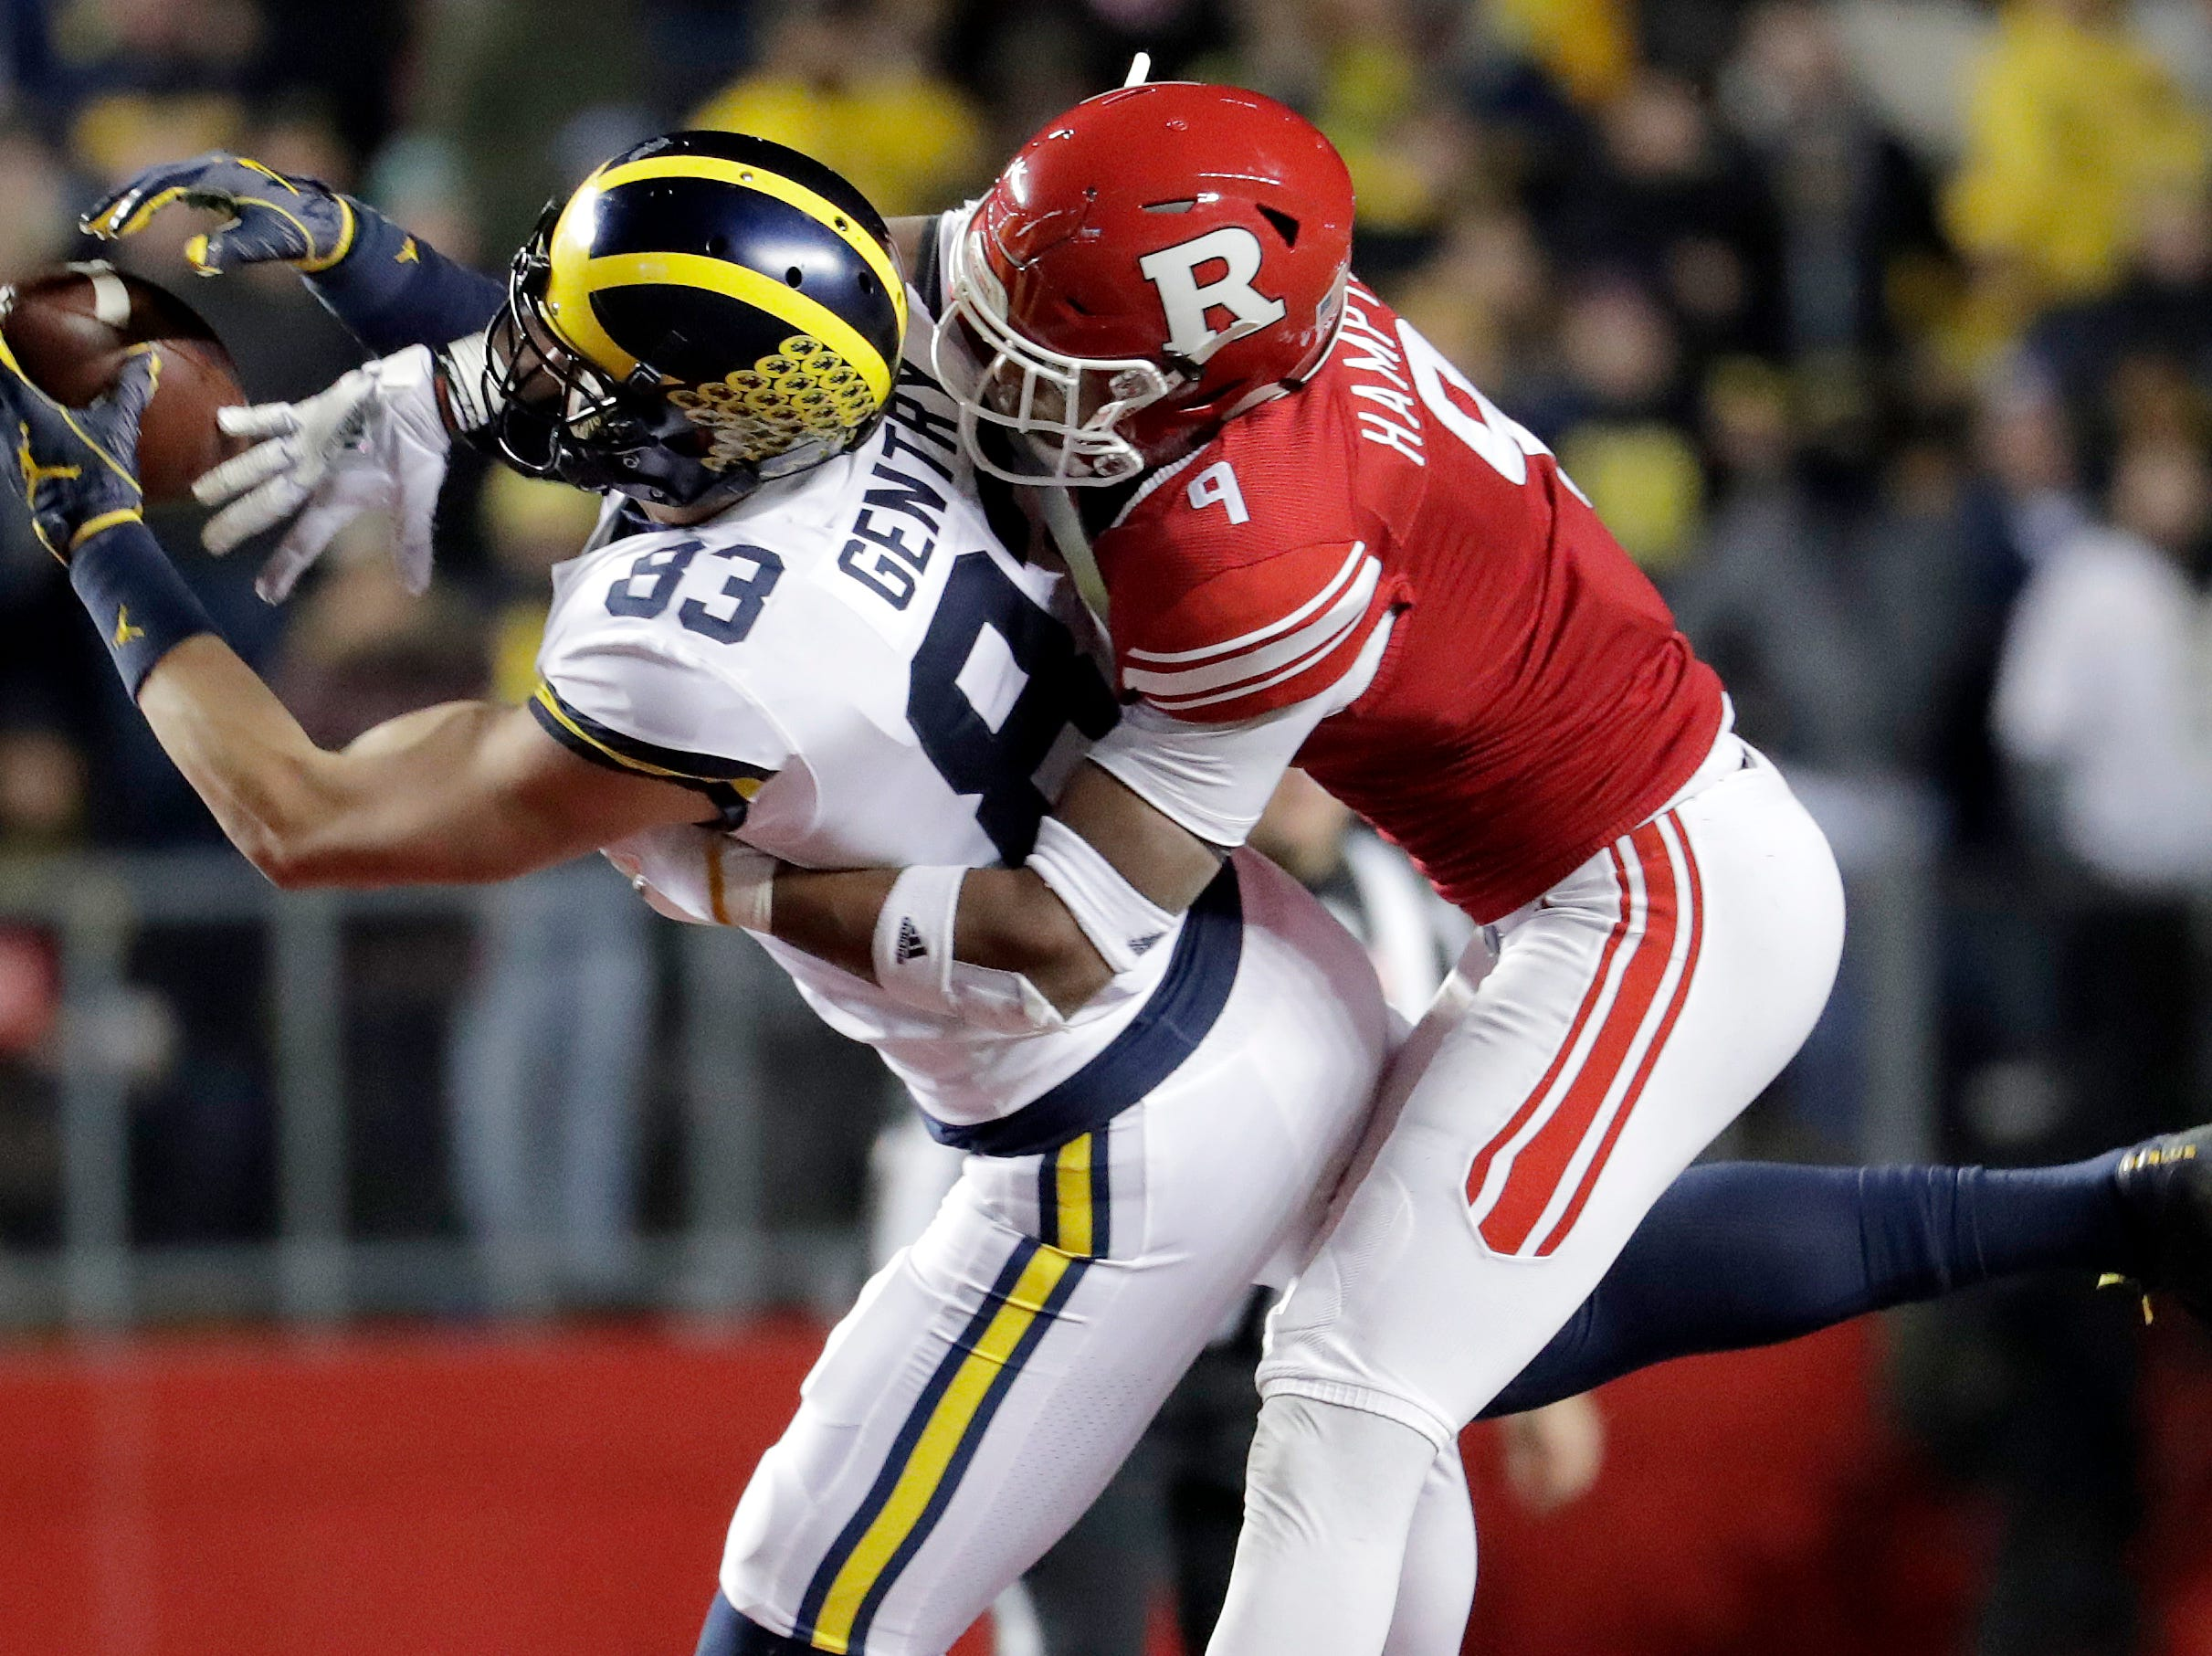 Michigan tight end Zach Gentry makes a catch as Rutgers defensive back Saquan Hampton defends.